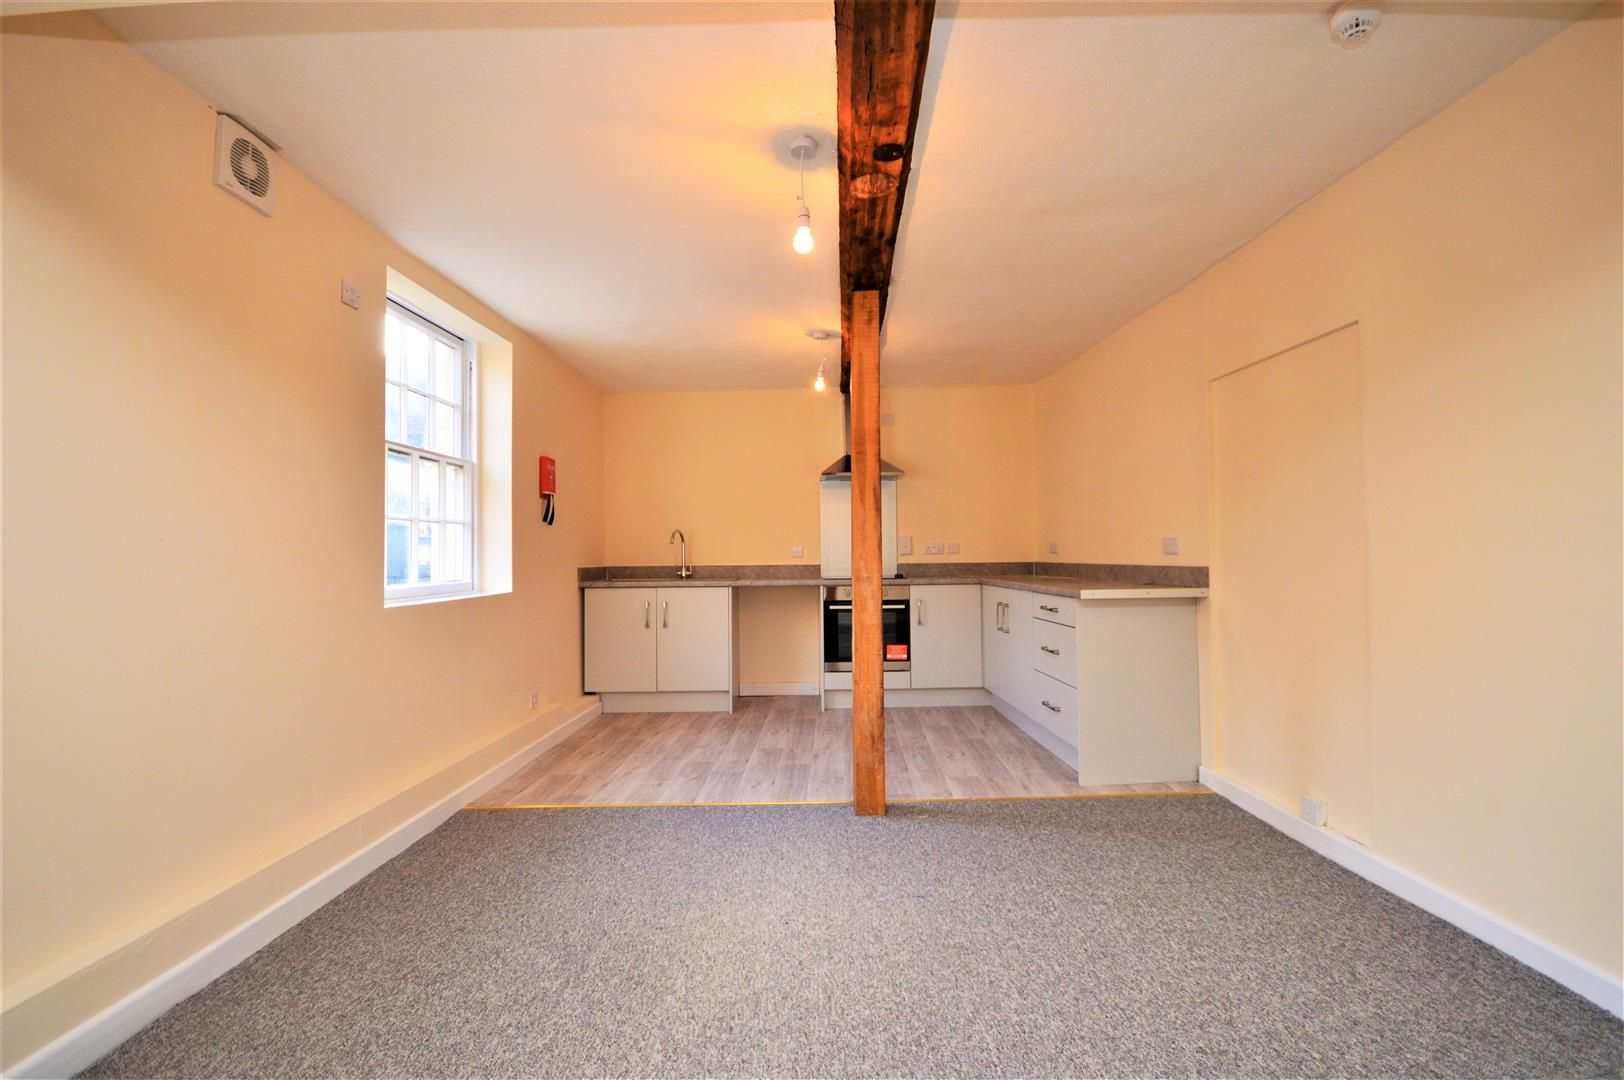 2 bed flat for sale in Hereford, HR4